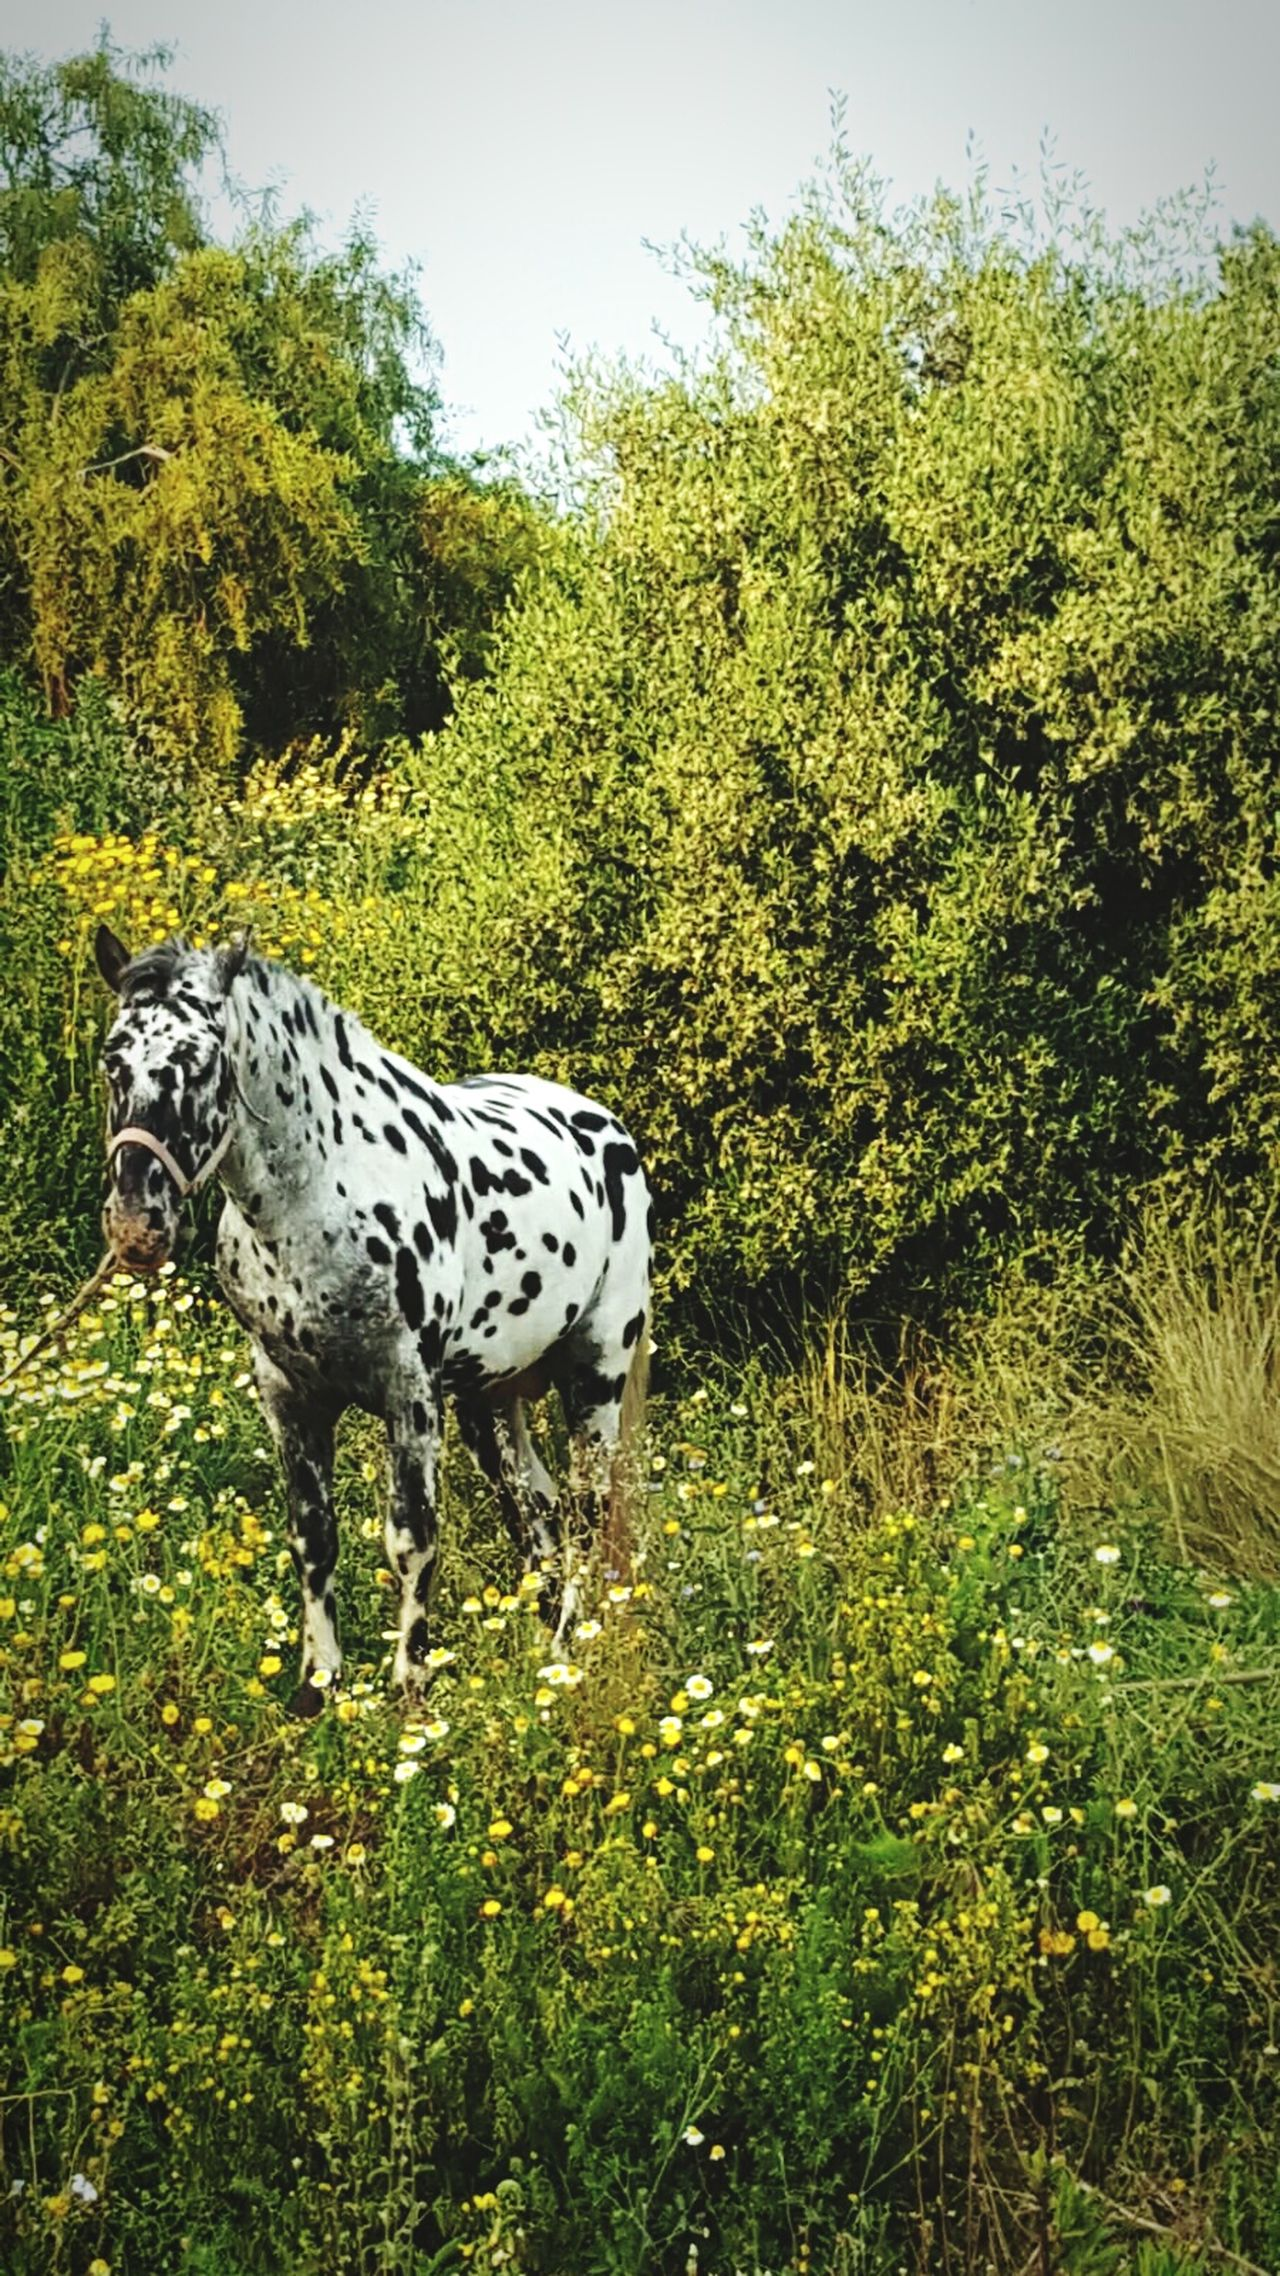 Animal Themes One Animal Day Nature Outdoors Animal Markings Horse Photography  Gardens Nerja Andalucia Nerja Coast Nerja Coastal View Spotted Grass Mammal No People Full Length Tree Leopard